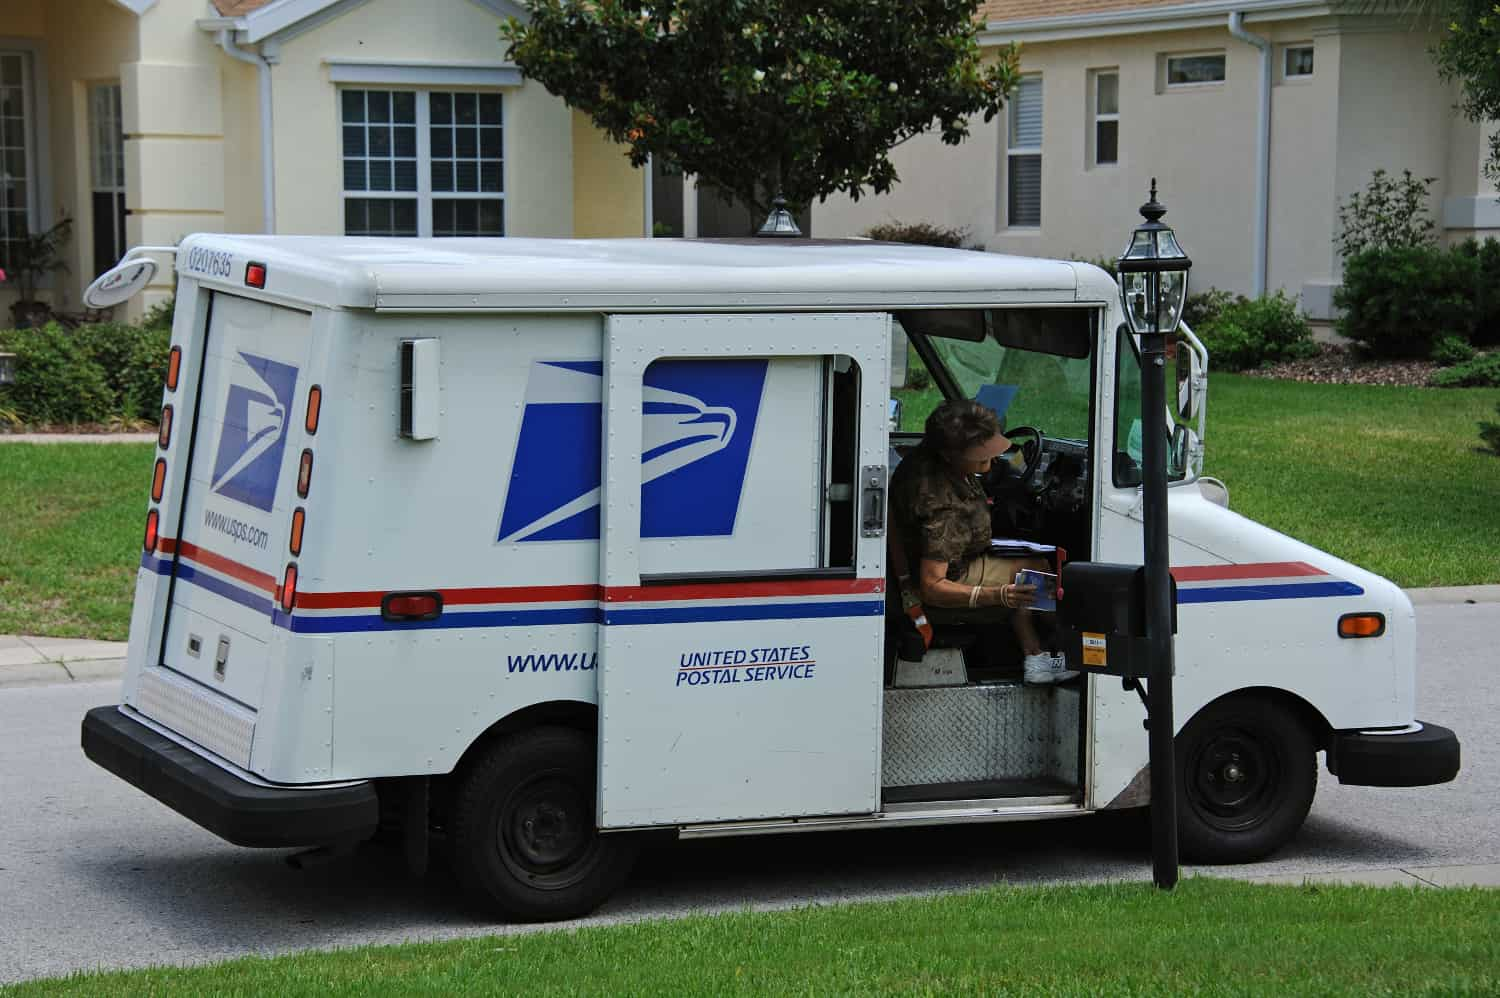 USPS fails to deliver, cited for late mail delivery